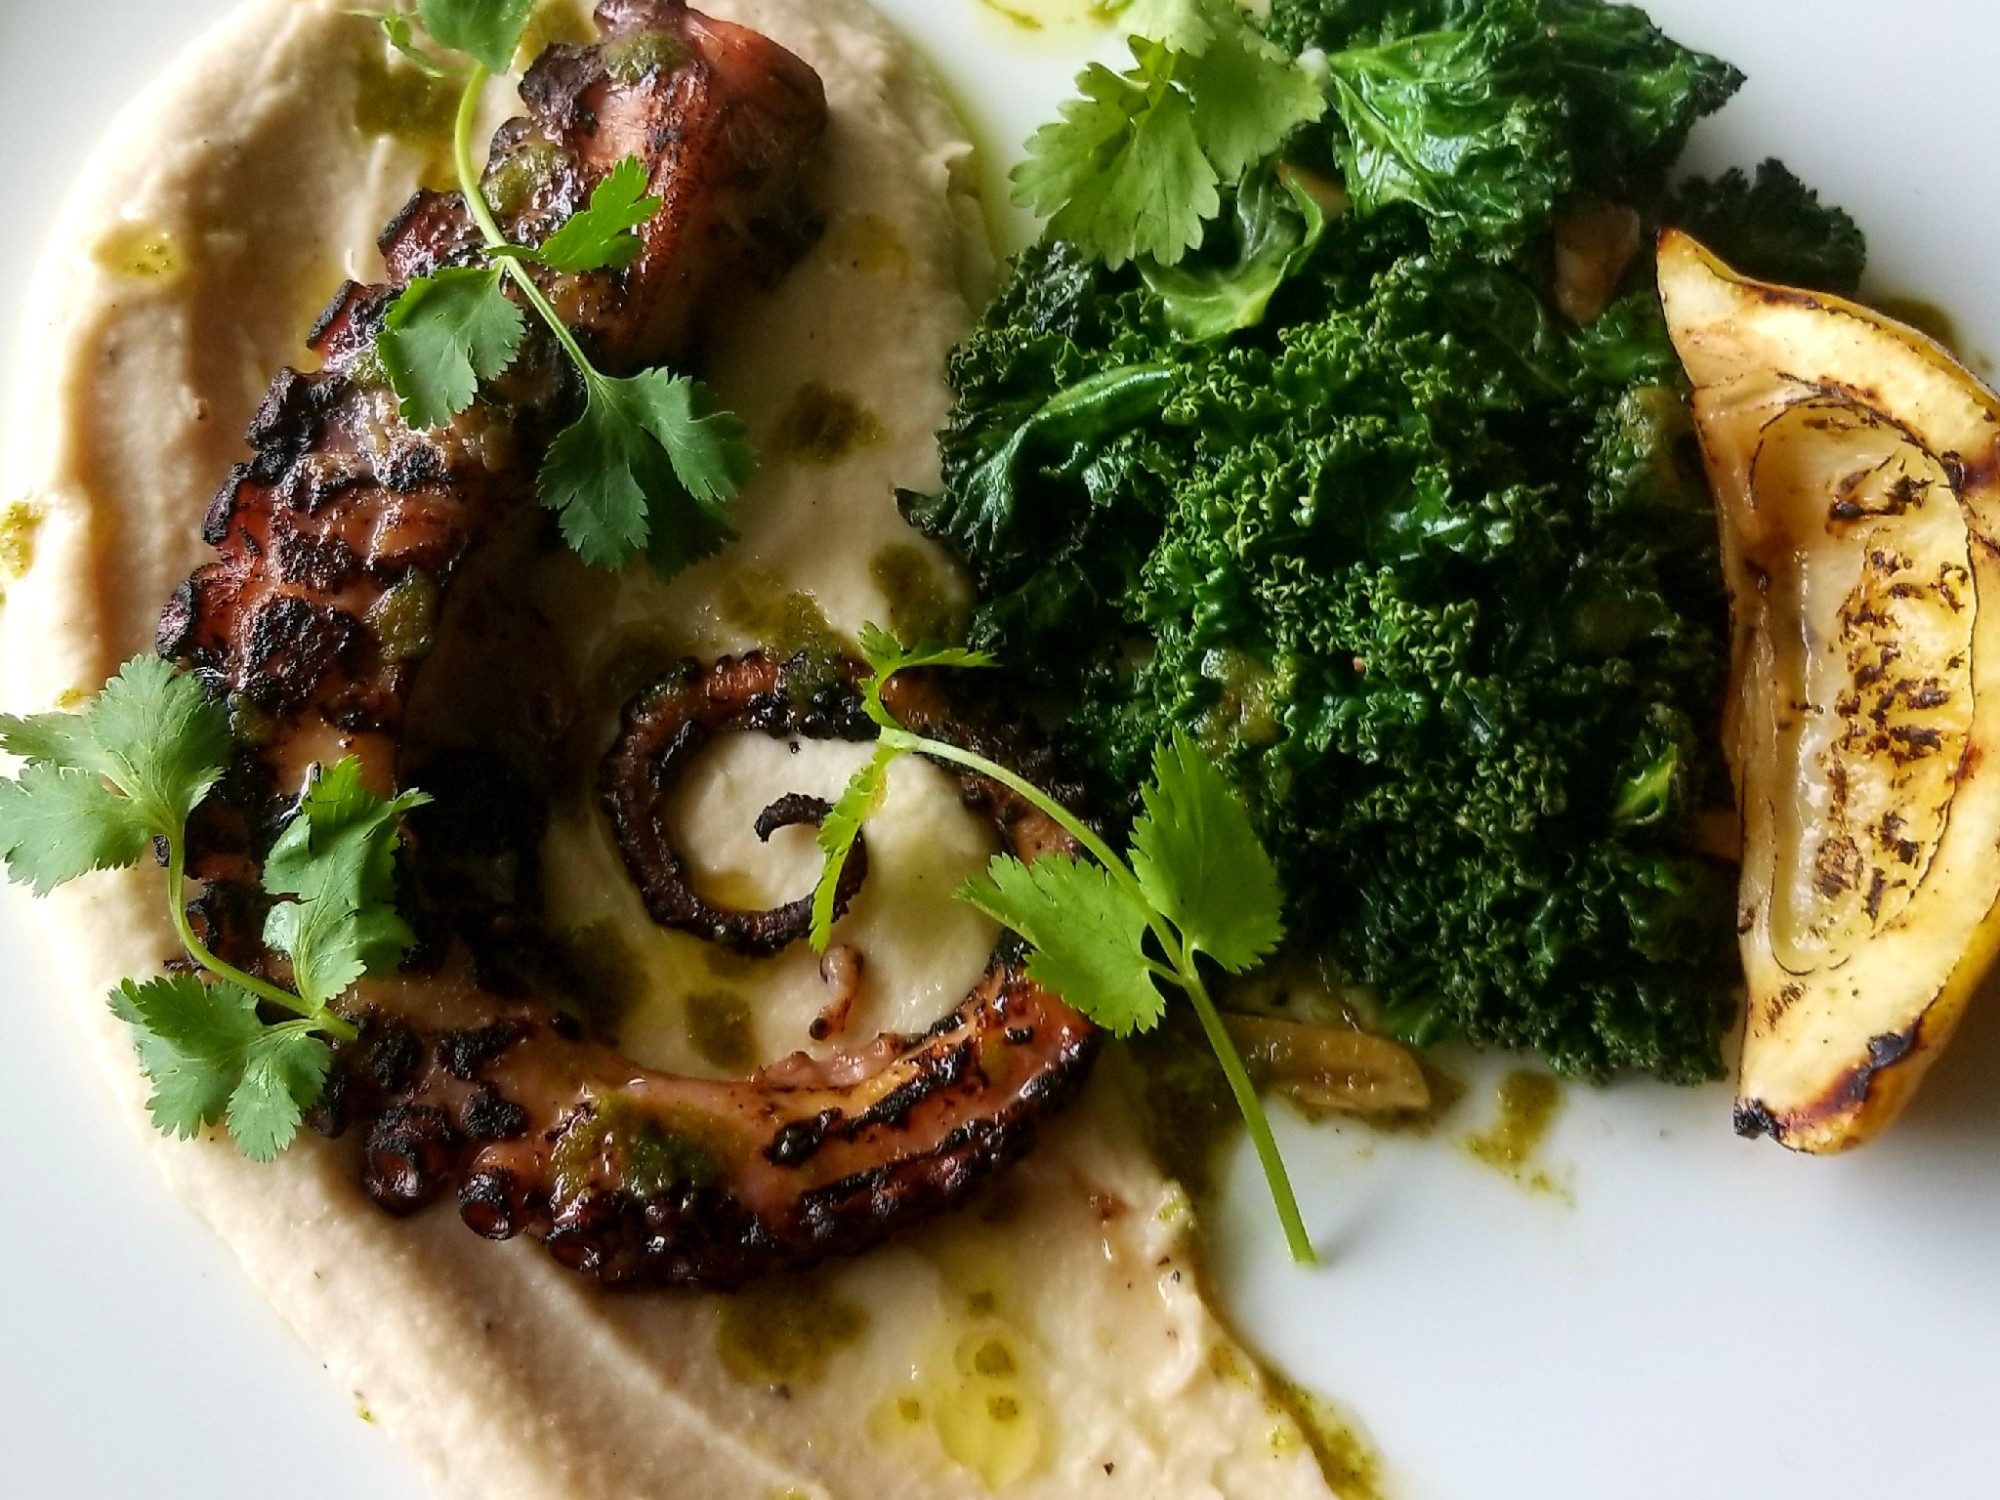 Charred Mediterranean Octopus with a Cilantro Chimichurri